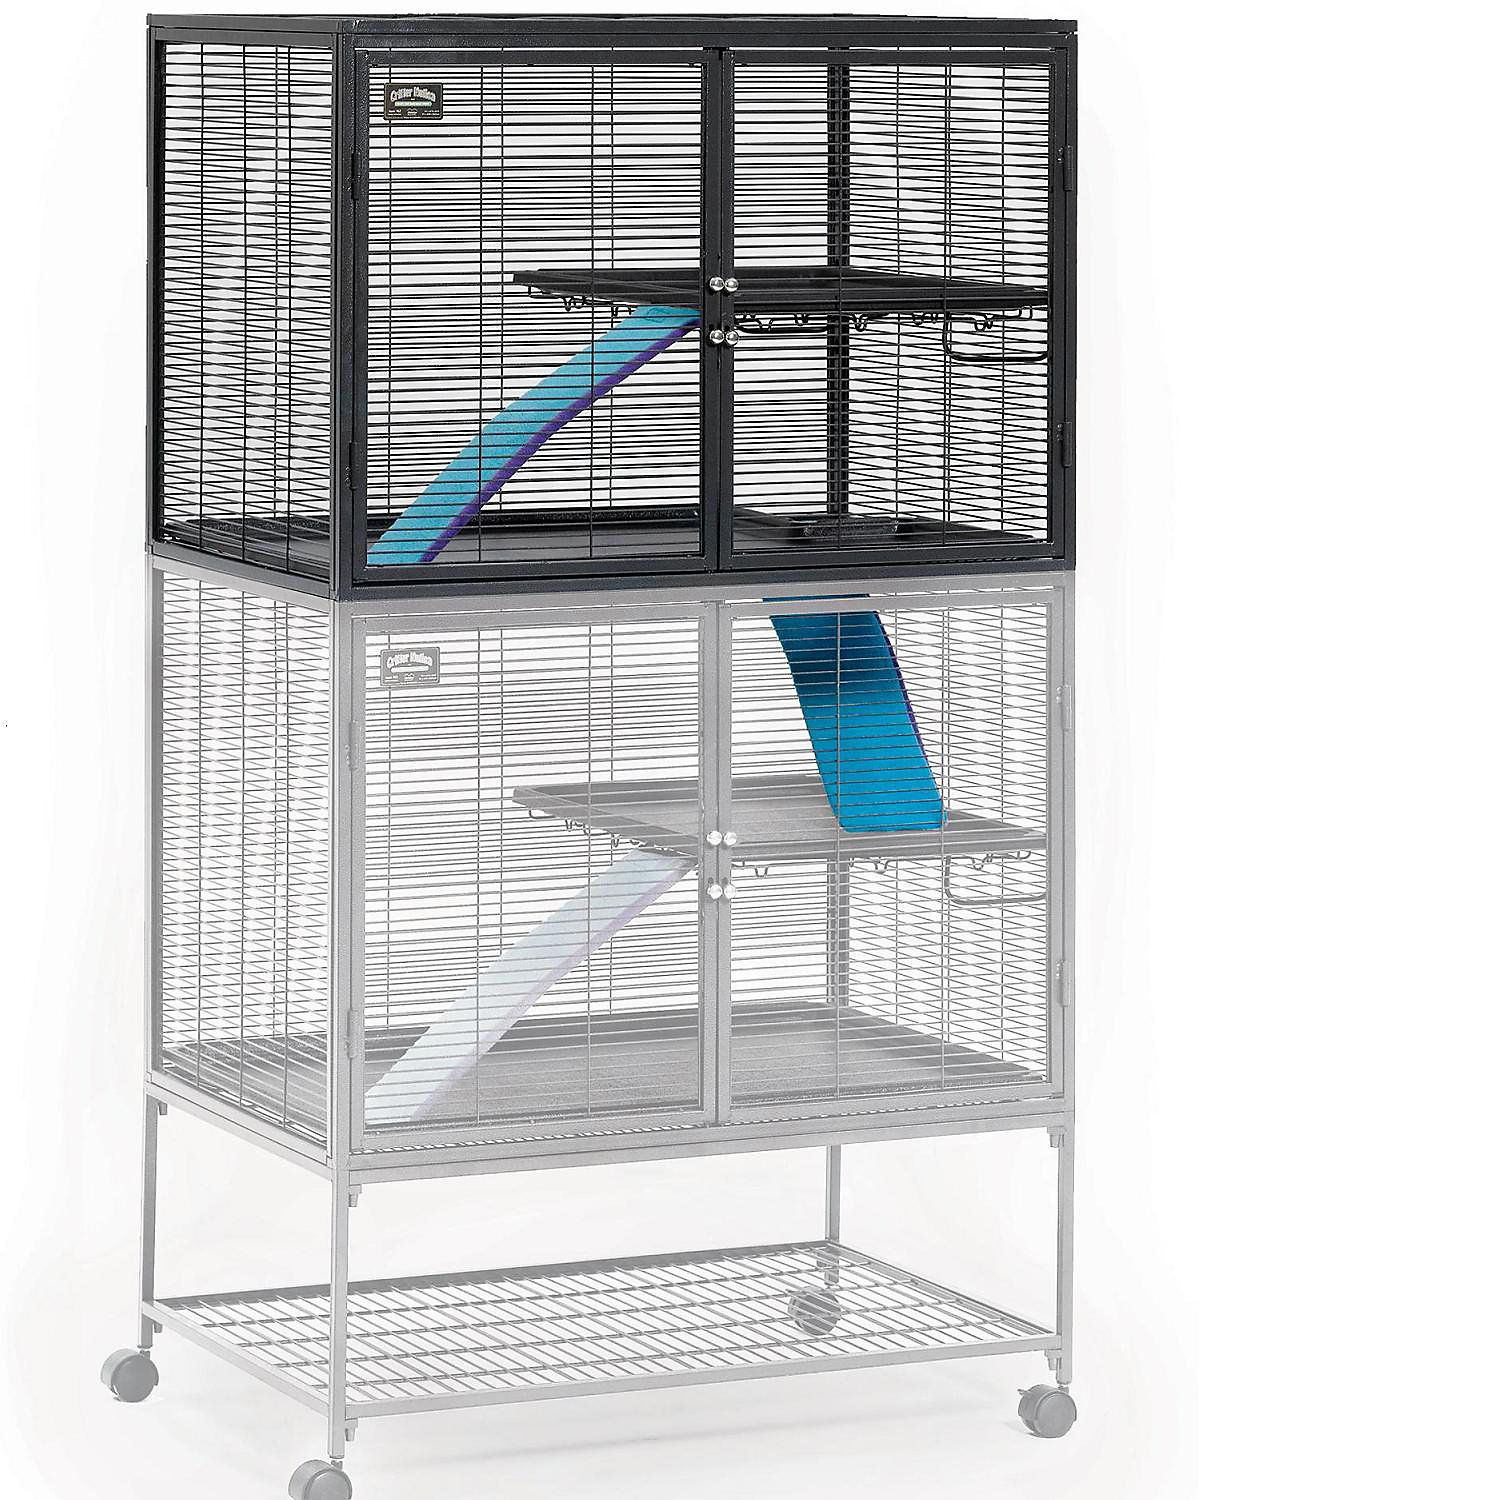 Midwest Critter Nation Add On Unit 36 Cages For Sale Critter Nation Cage Small Pets #ware #living #room #series #ferret #home